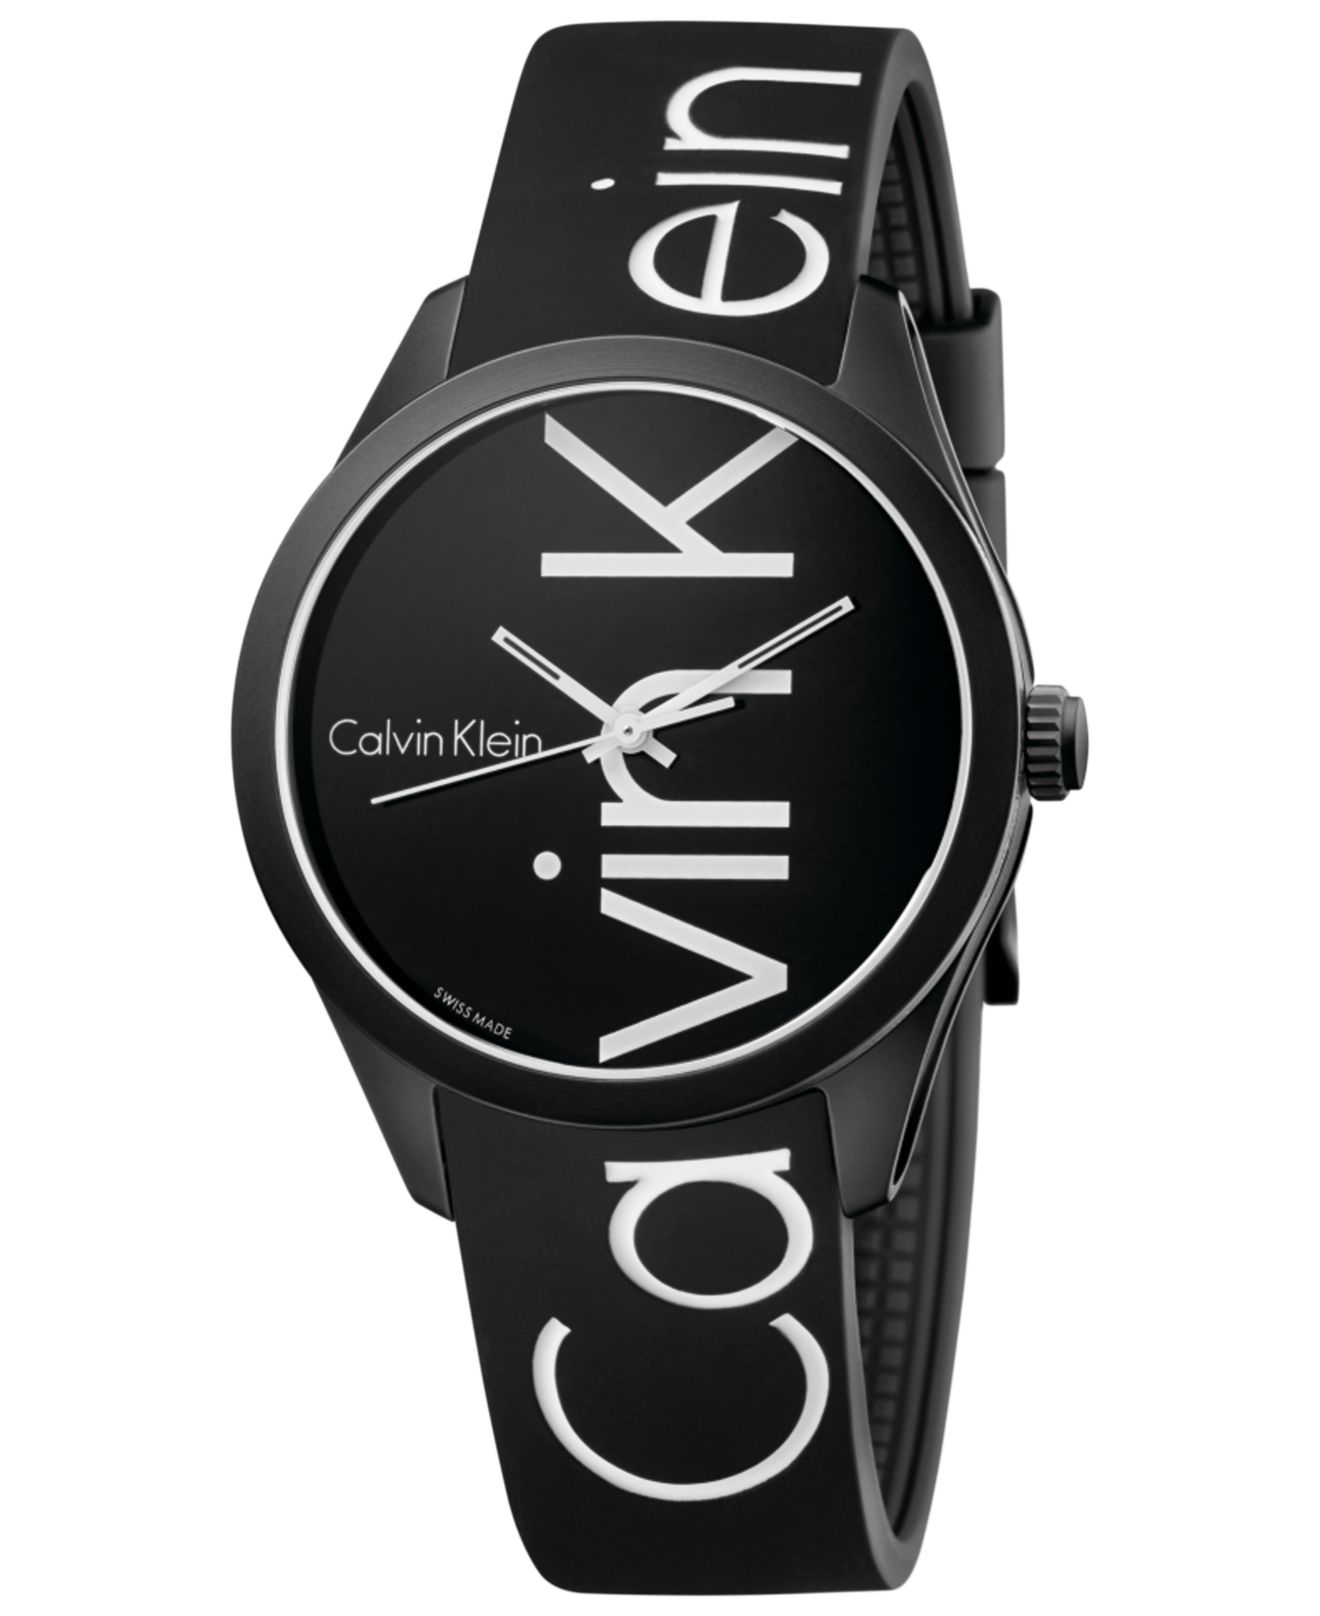 Calvin Klein Men S Color Black Silicone Strap Watch 40mm